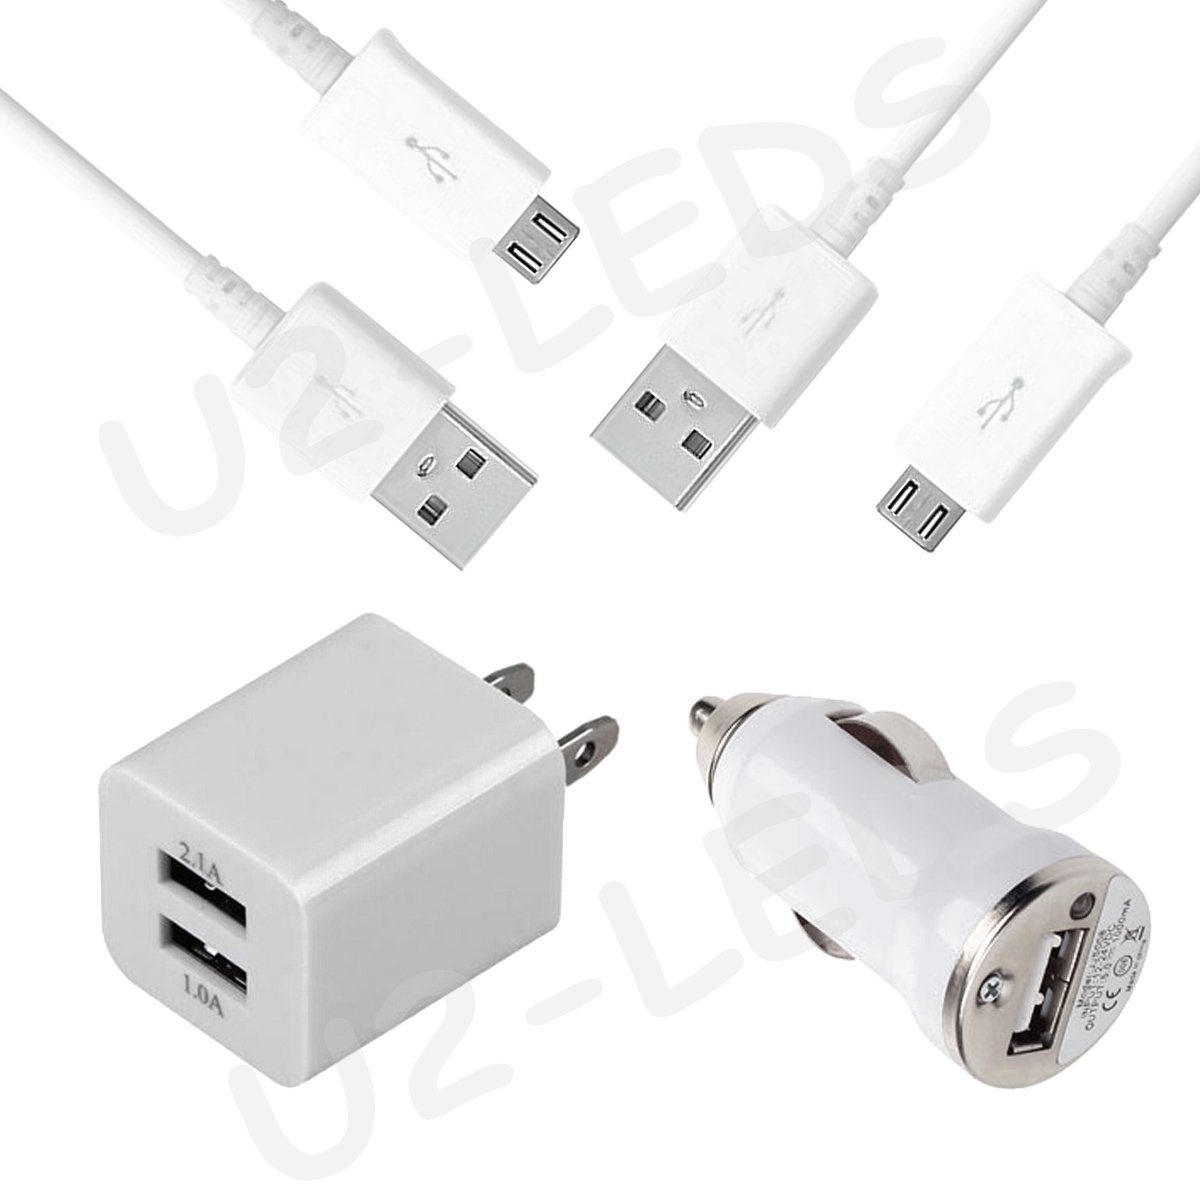 Dual Wall AC Home + Car Charger + 2 Micro-USB Data Sync Cable Samsung Note 2 Galaxy S4 S3